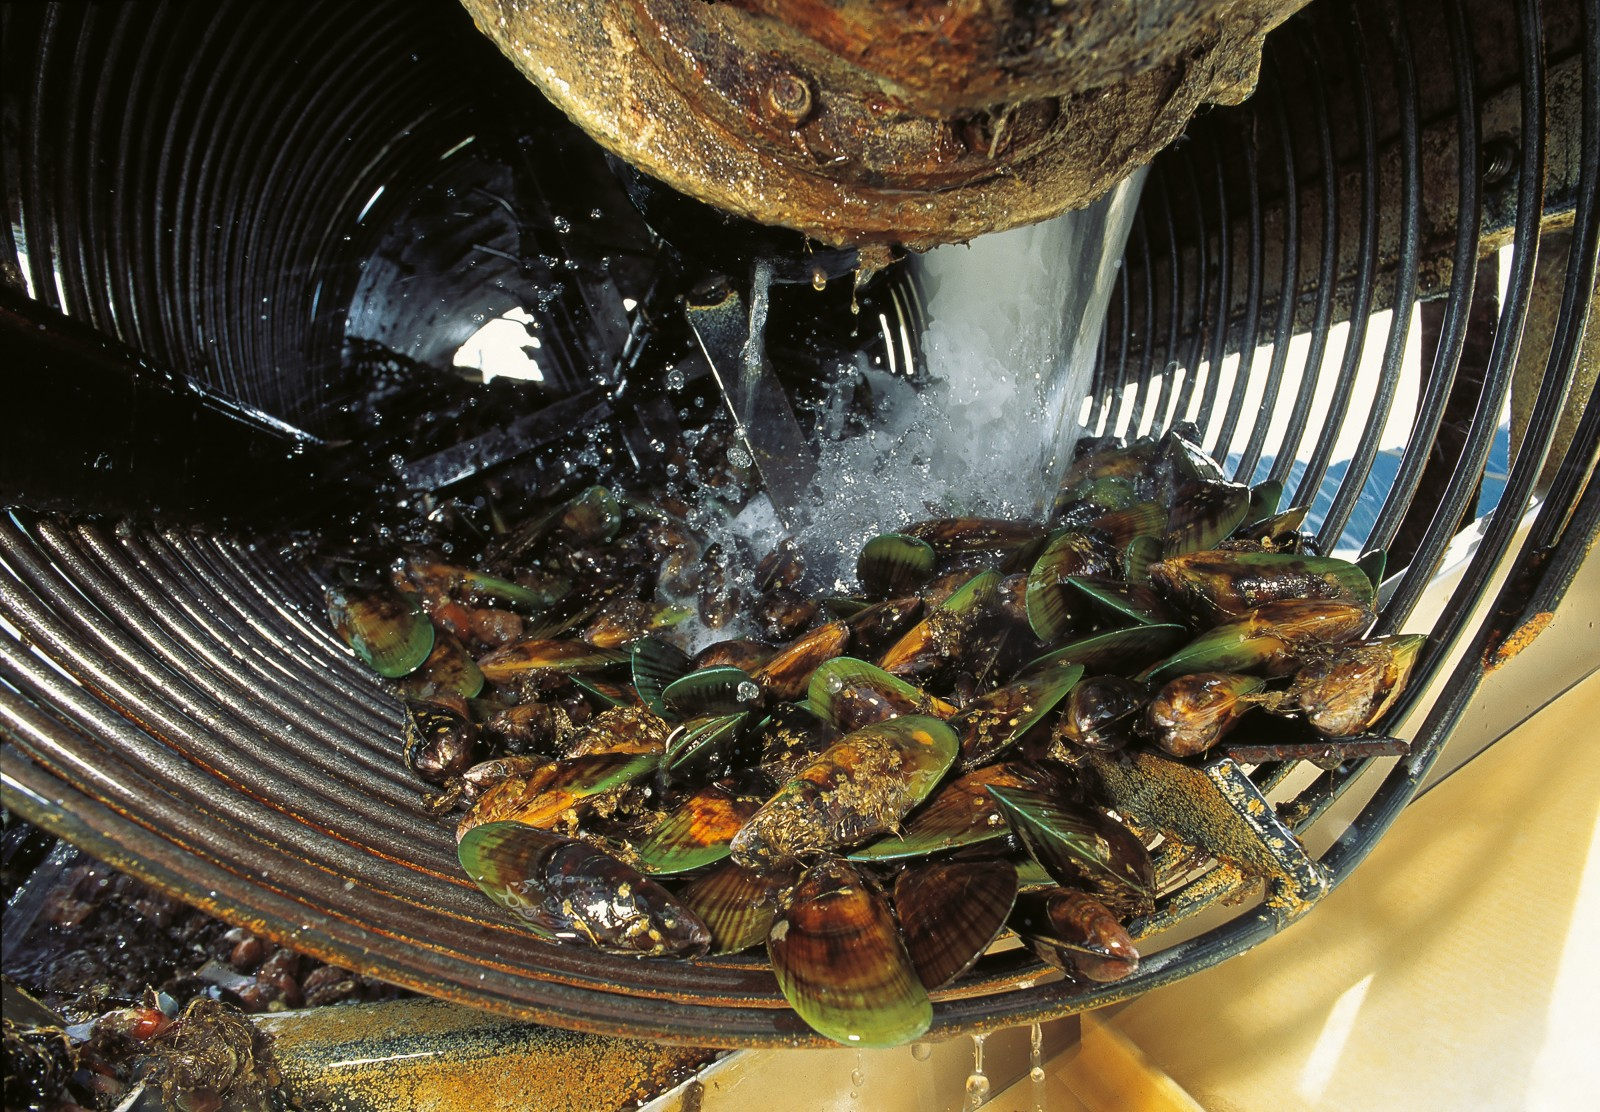 High pressure water jets are used to clean encrusting organisms from freshly-harvested mussels.